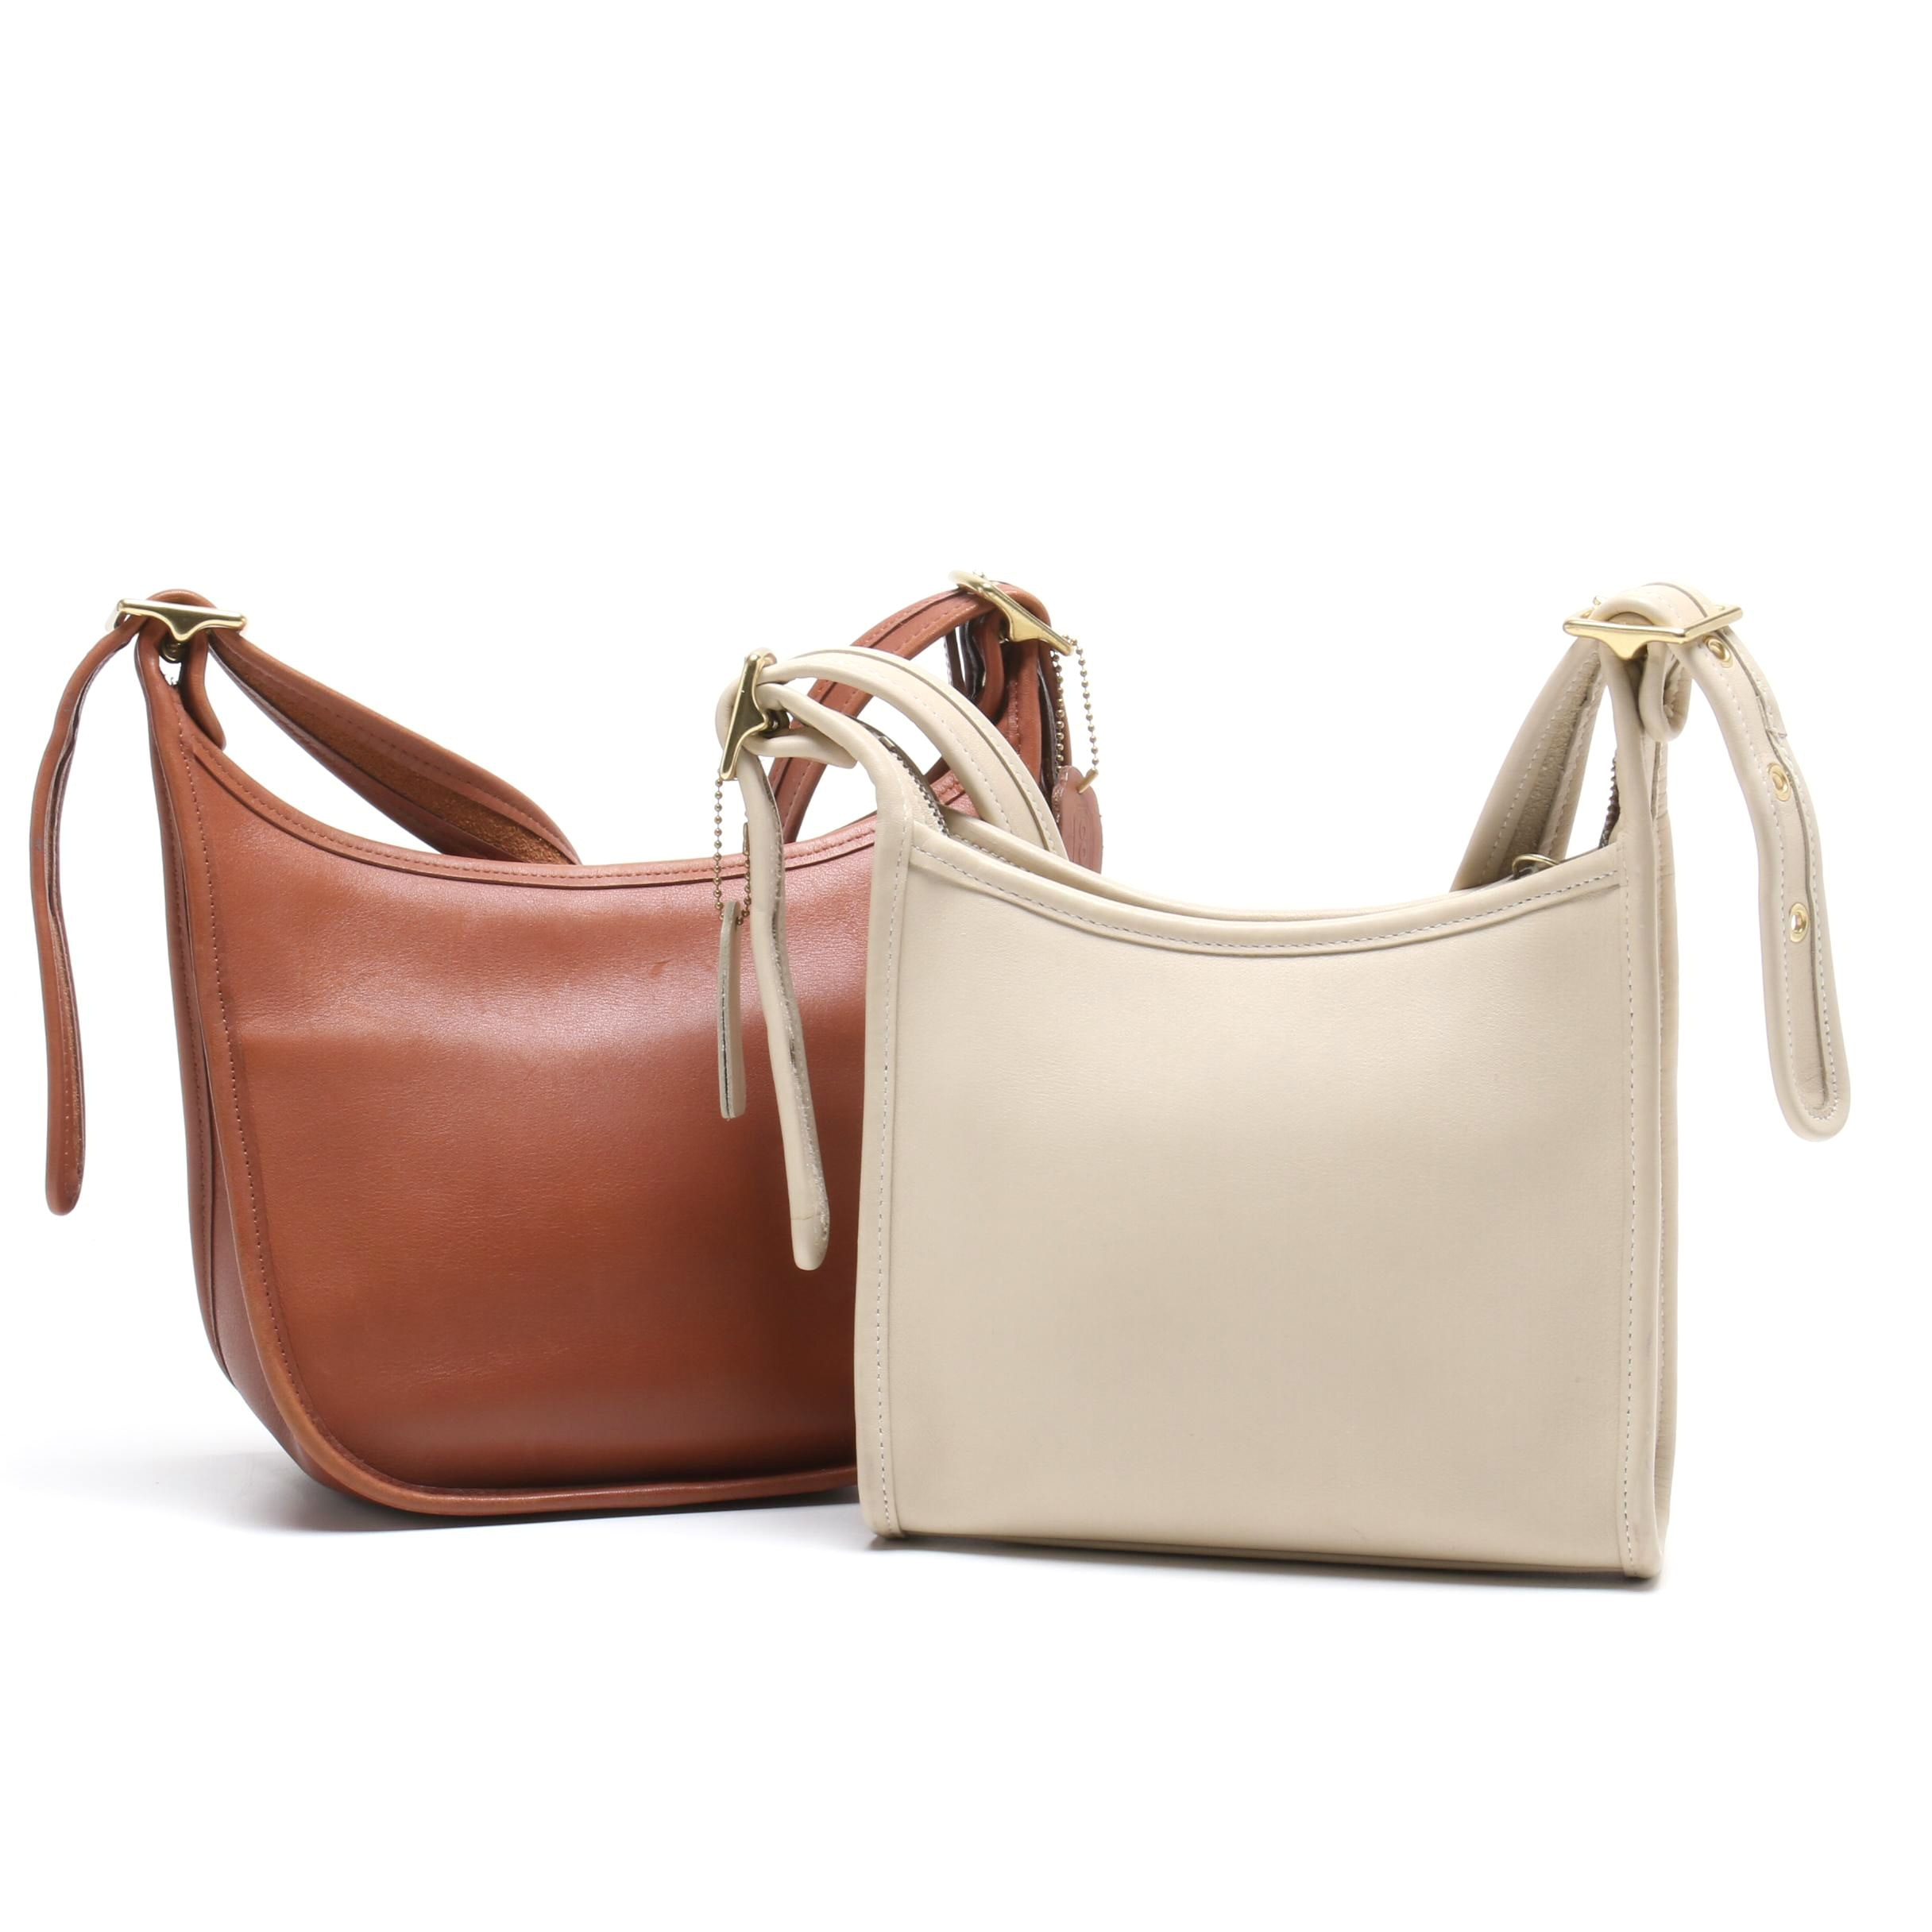 Coach Tan Legacy Leather Janice Shoulder Bag and Coach Bone Legacy Leather Bag